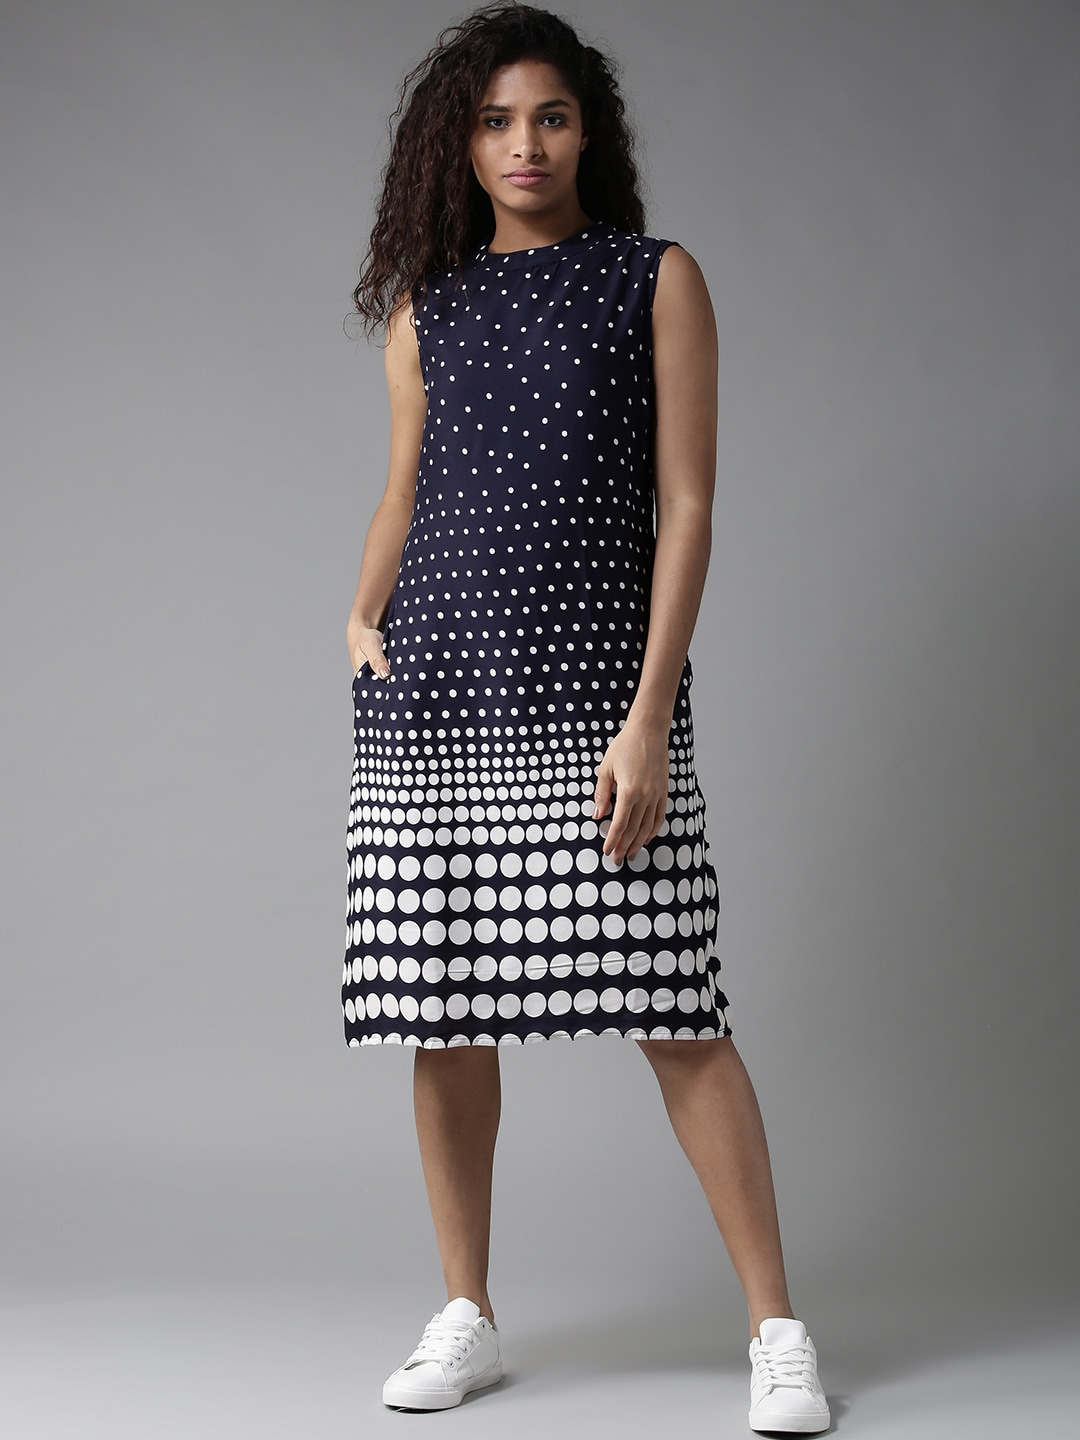 a3dfef637d Polka Dots Dresses - Buy Polka Dots Dresses online in India - Myntra